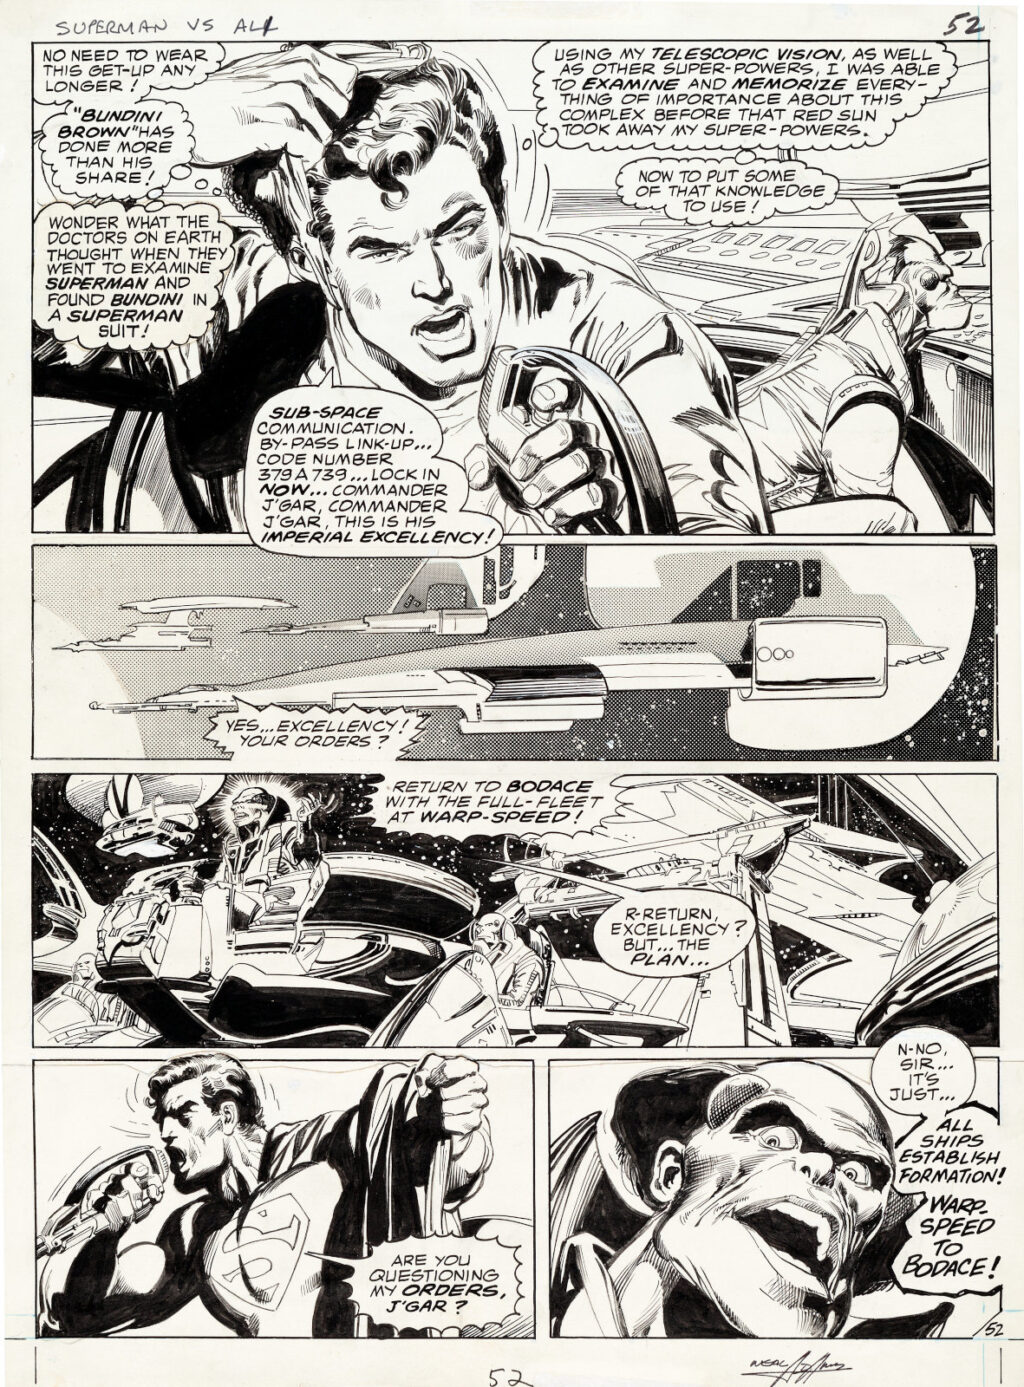 All New Collectors Edition C 56 page 52 by Neal Adams and Dick Giordano